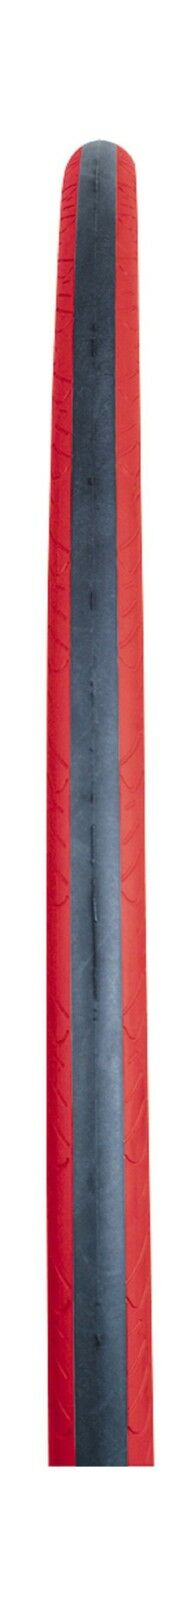 Serfas Folding Seca Tire with FPS Red 700 x 23mm Free Shipping